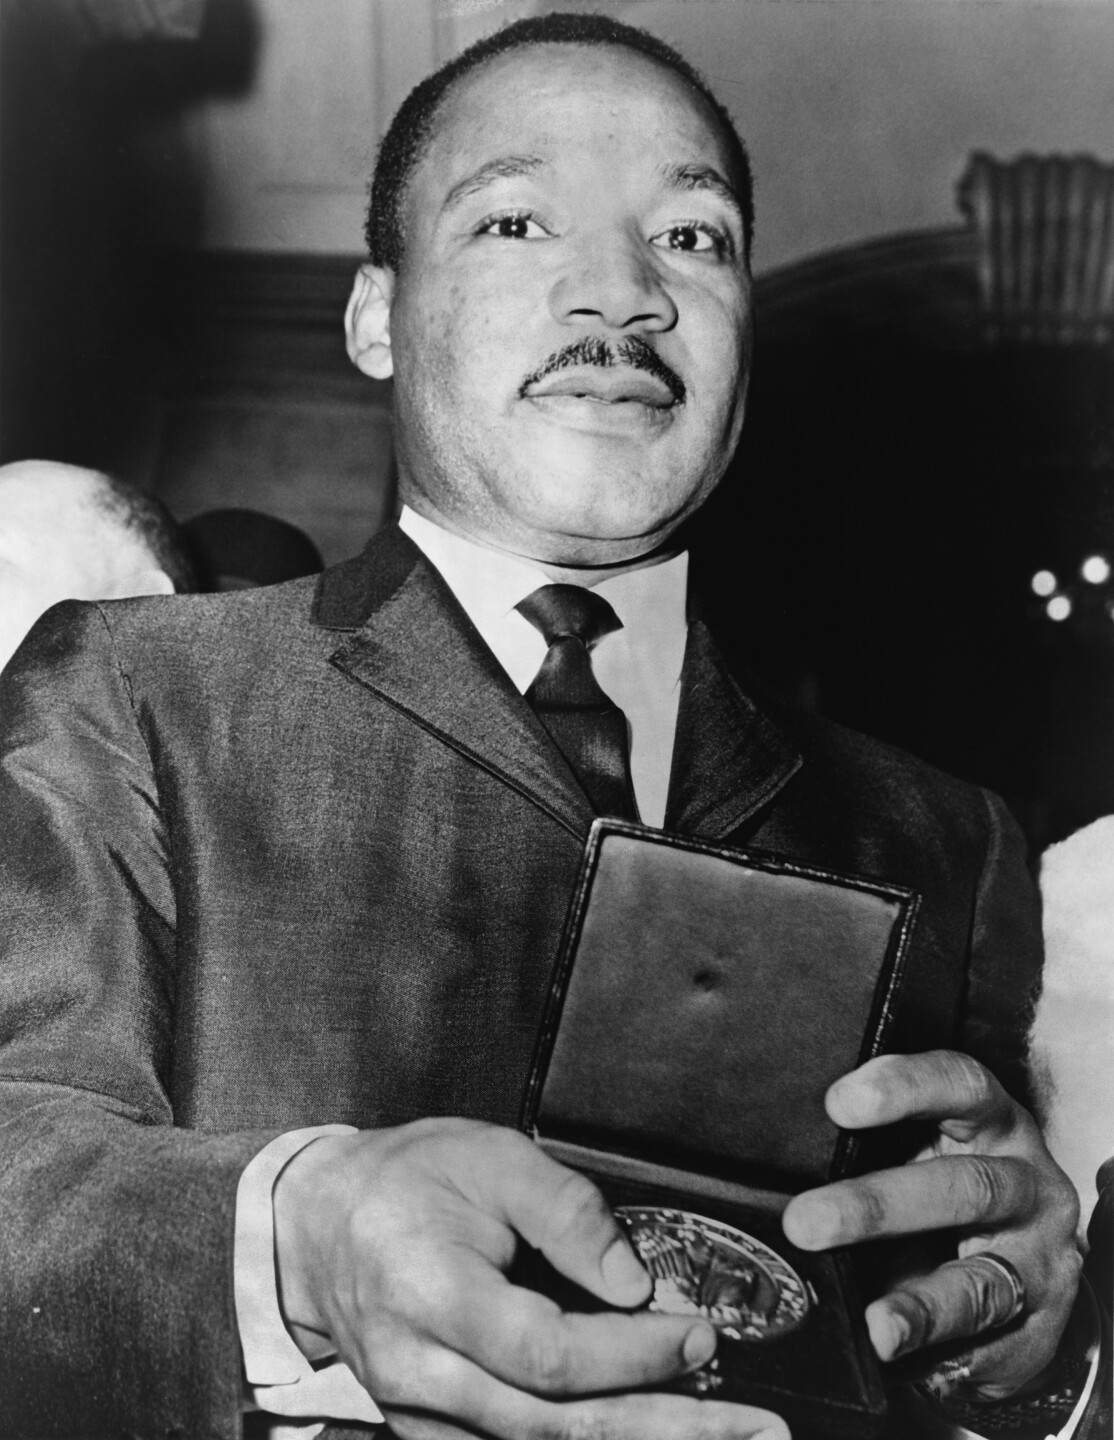 From the archives: Photos of Martin Luther King Jr. and his lasting impact